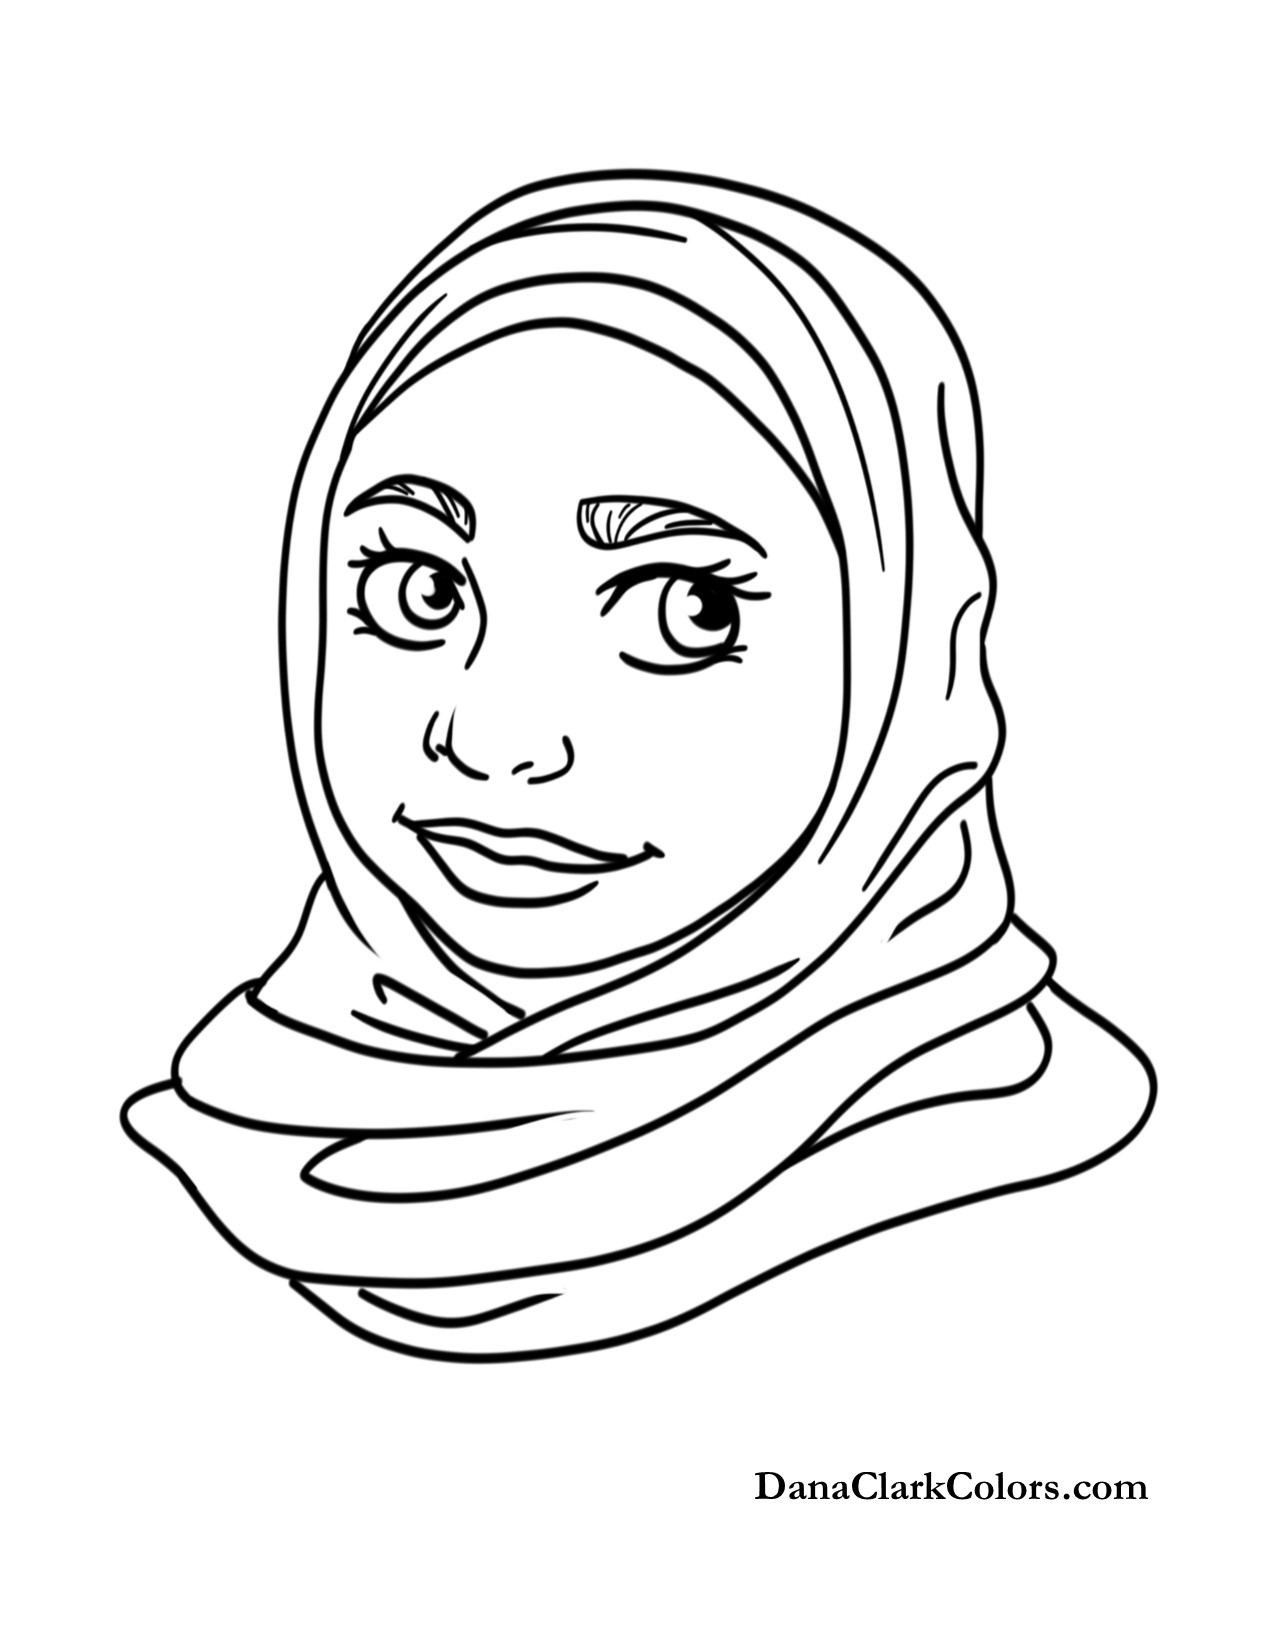 African american girls coloring pages ~ free-coloring-page-11 - DanaClarkColors.com